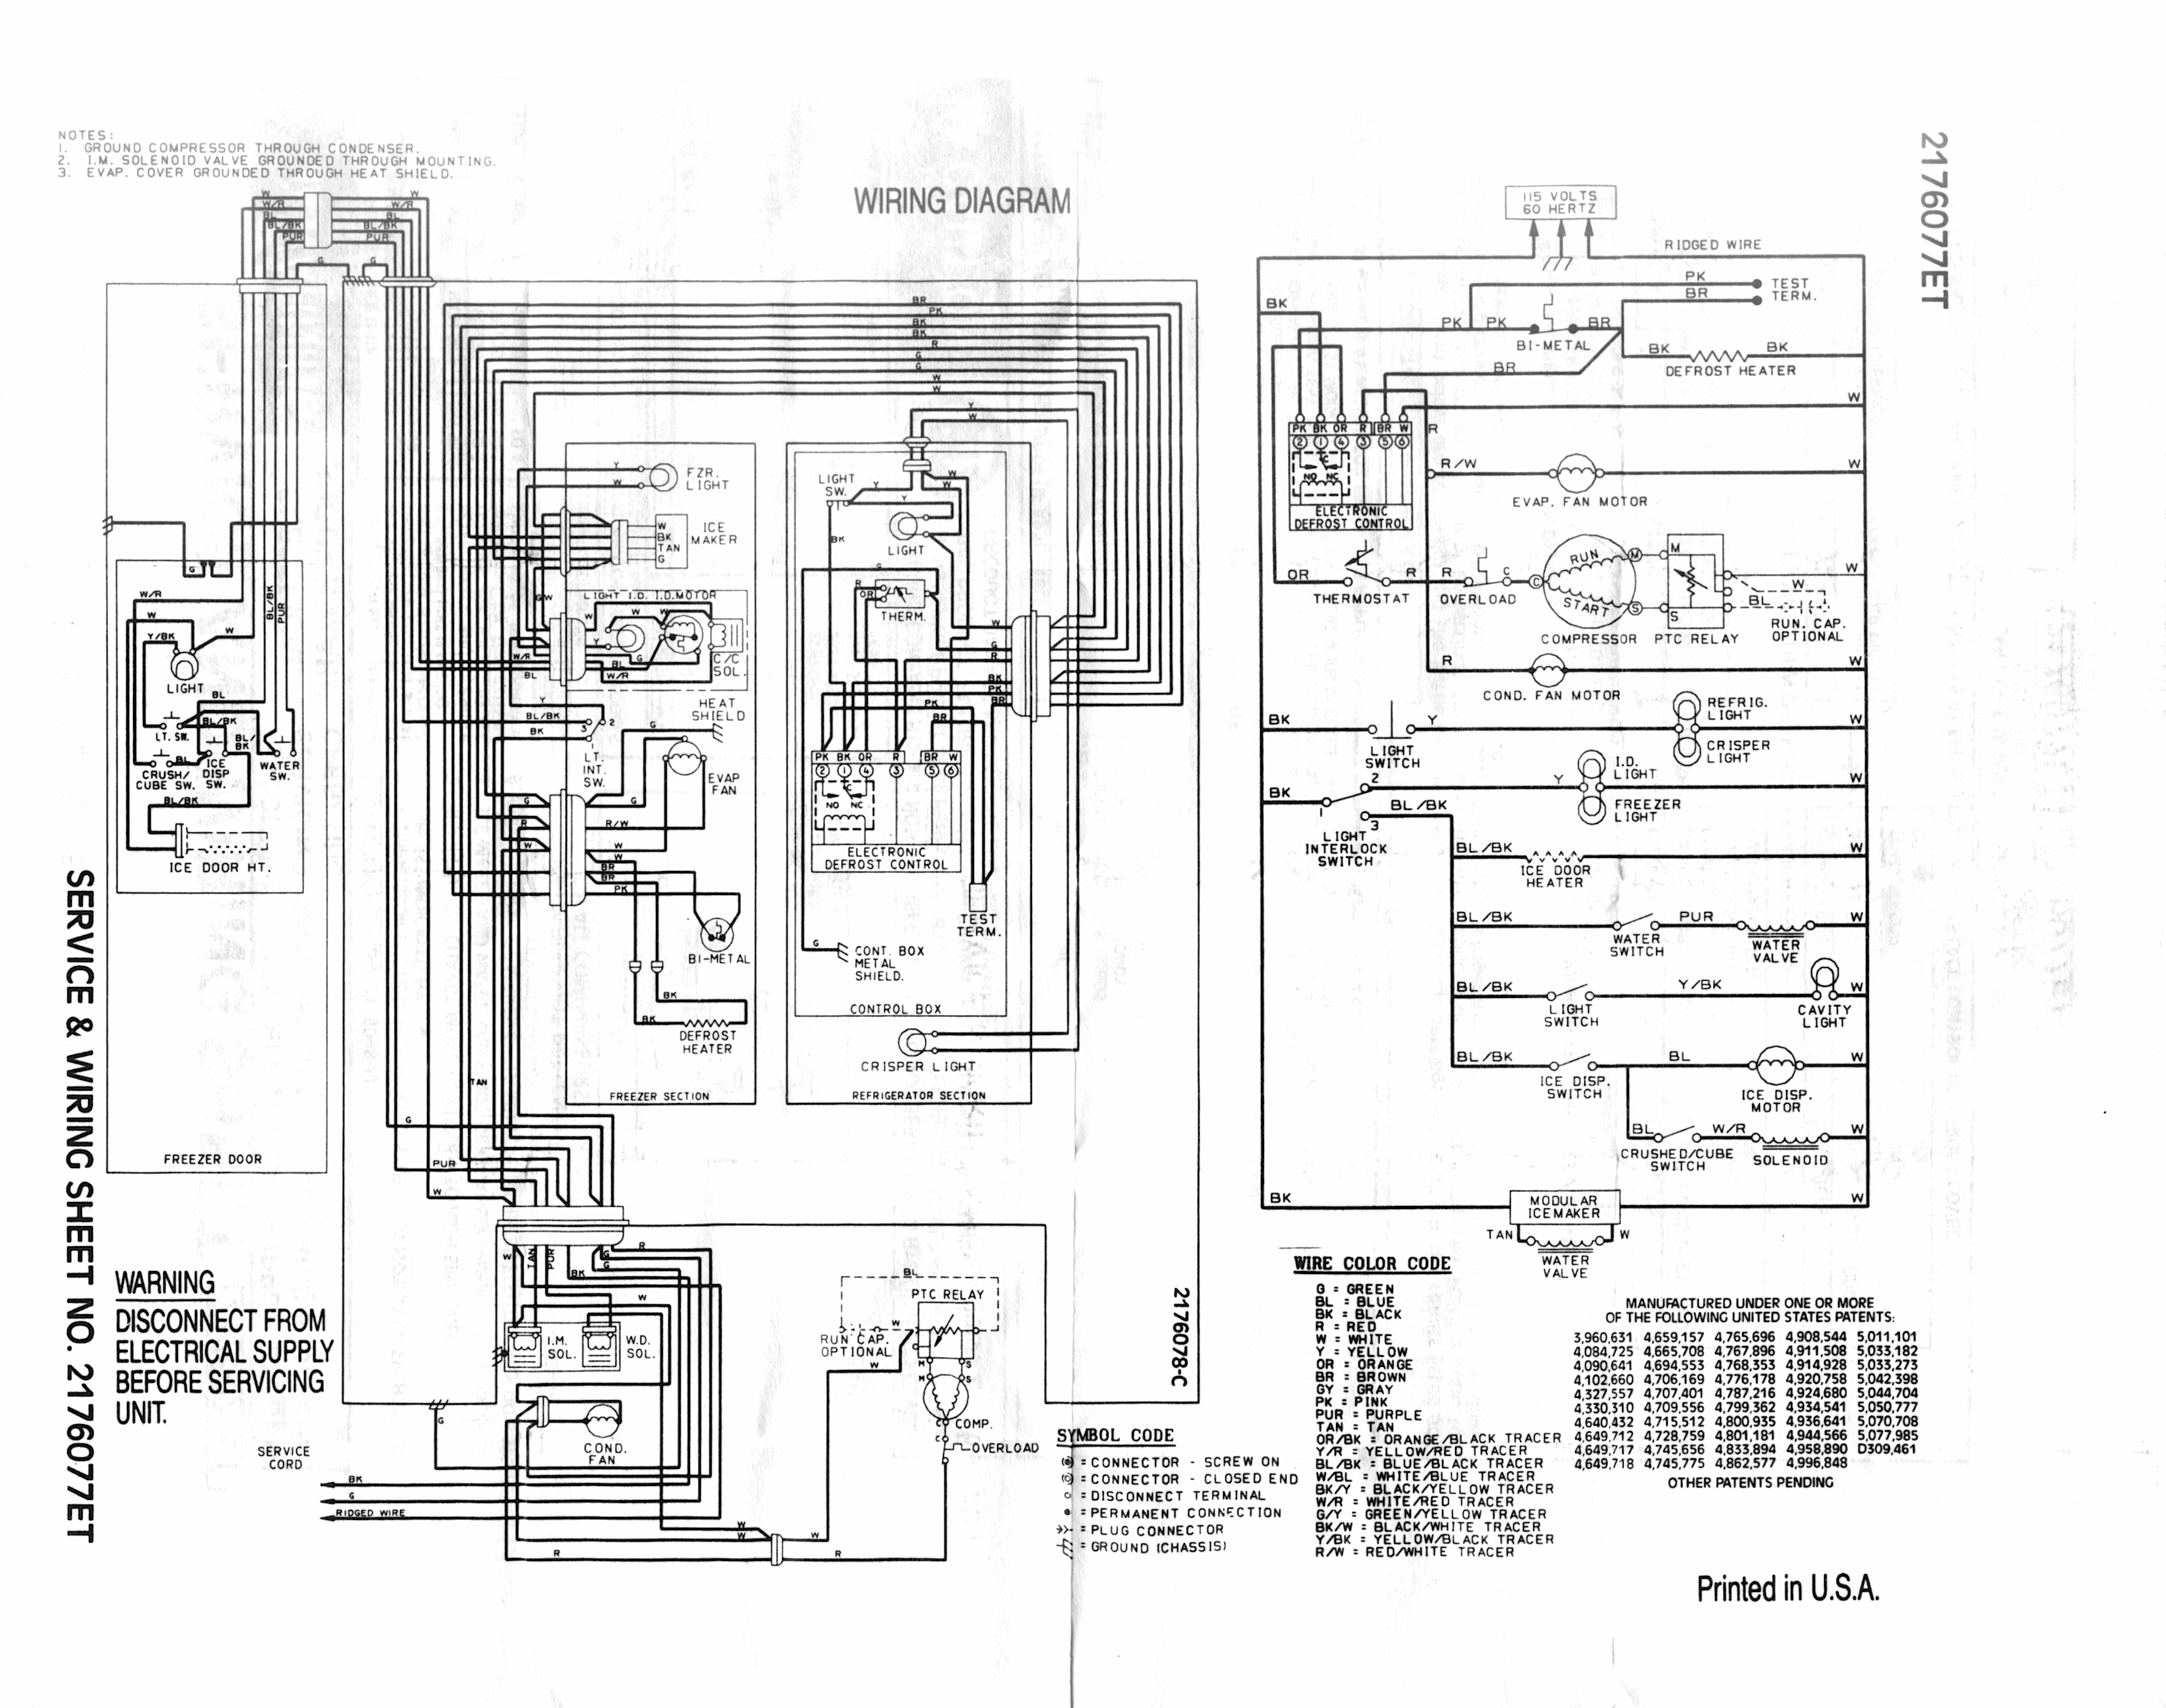 Sears Refrigerator Wiring Diagram - Diagram Design Sources schematic-methods  - schematic-methods.lesmalinspres.fr | Whirlpool Refrigerator Schematic Diagram |  | schematic-methods.lesmalinspres.fr